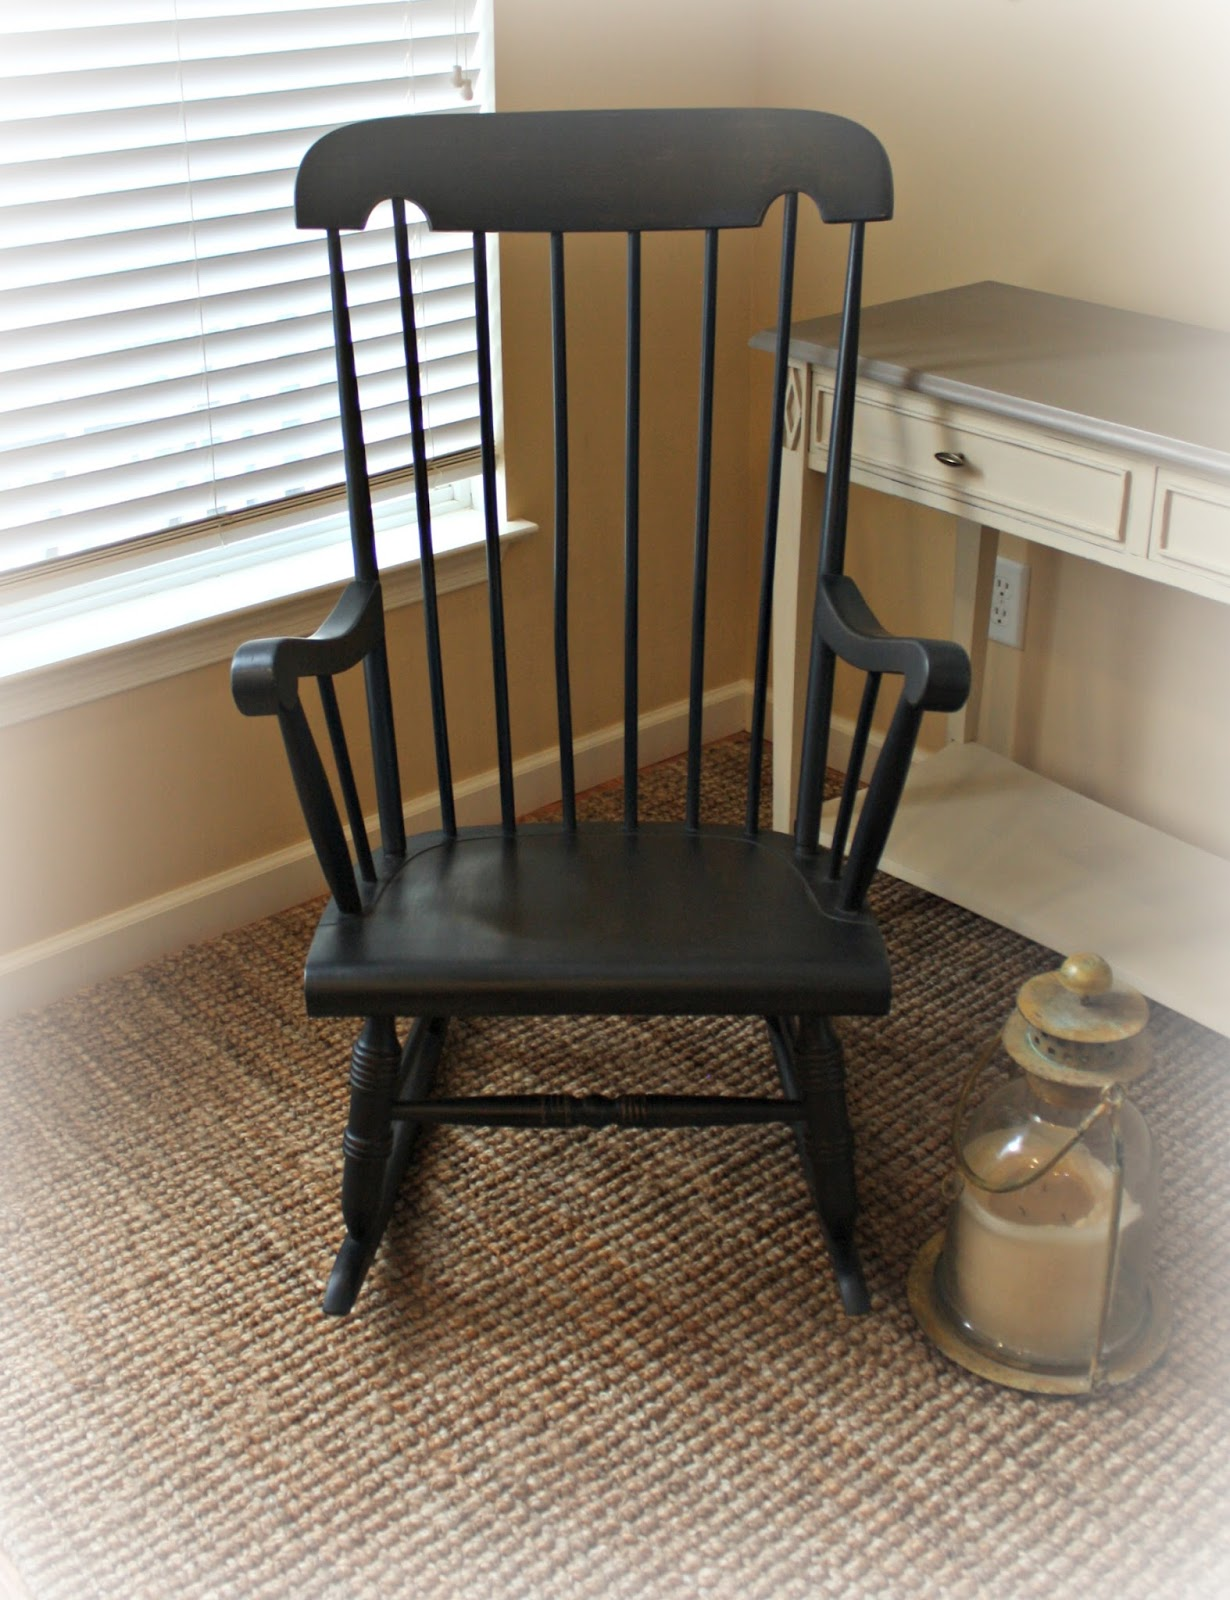 Rocking chair painted in Graphite chalk paint